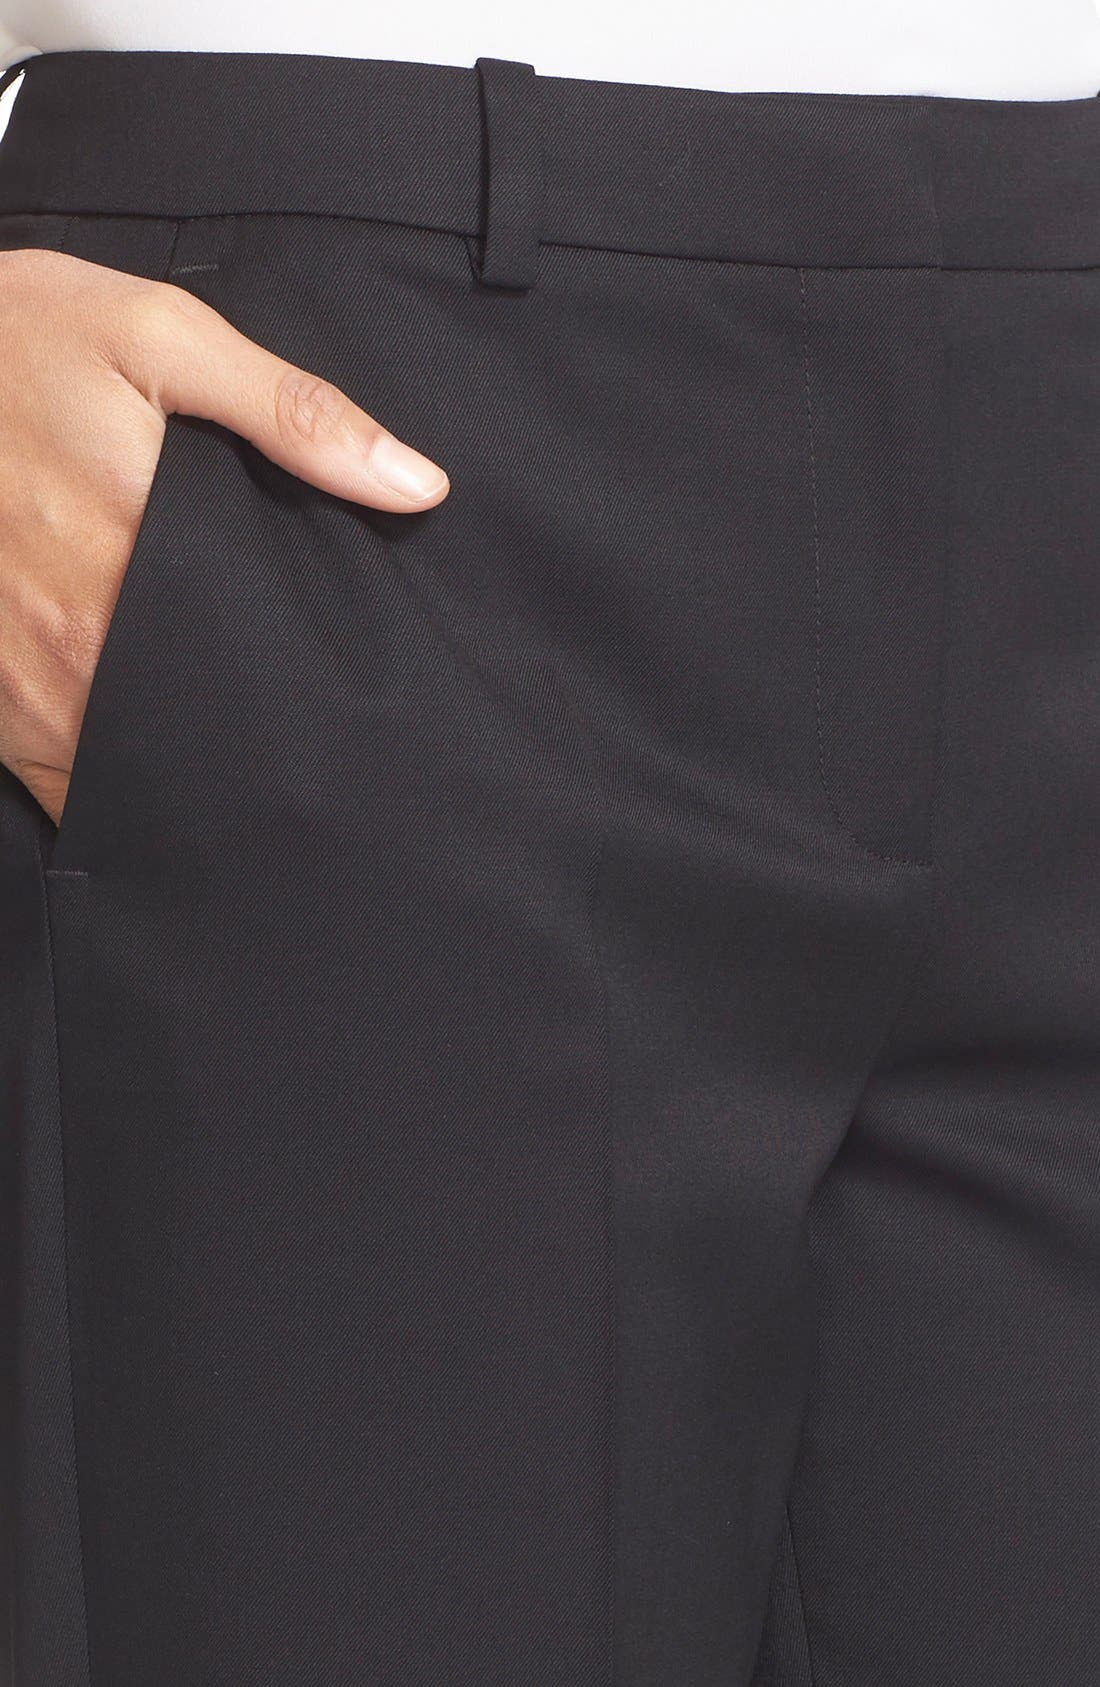 'Timeless' Stretch Wool Trousers,                             Alternate thumbnail 5, color,                             Black